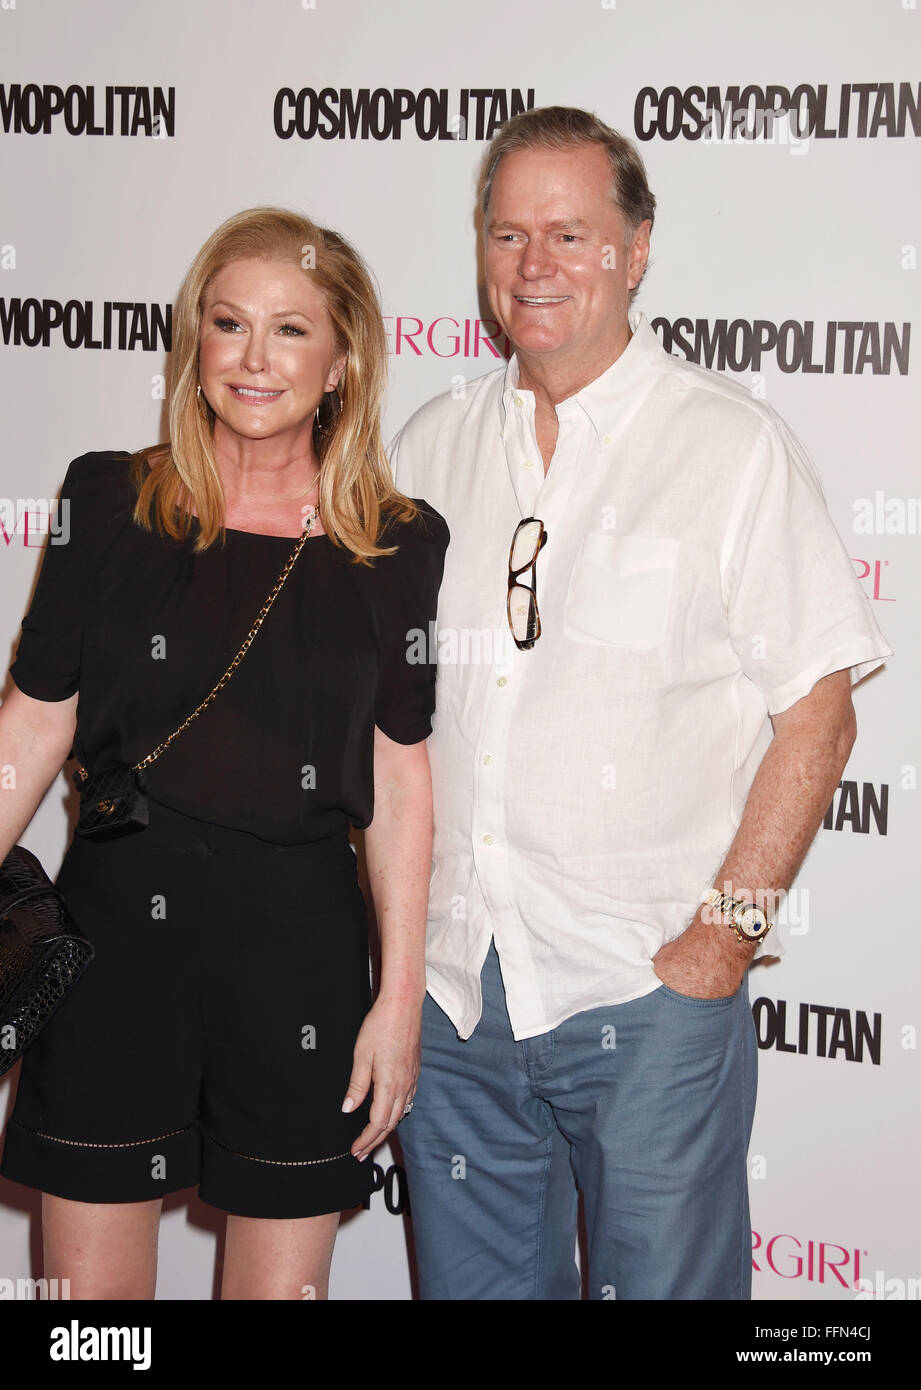 Kathy Hilton and Rick Hilton arrive at Cosmopolitan Magazine's 50th Birthday Celebration at Ysabel on October - Stock Image